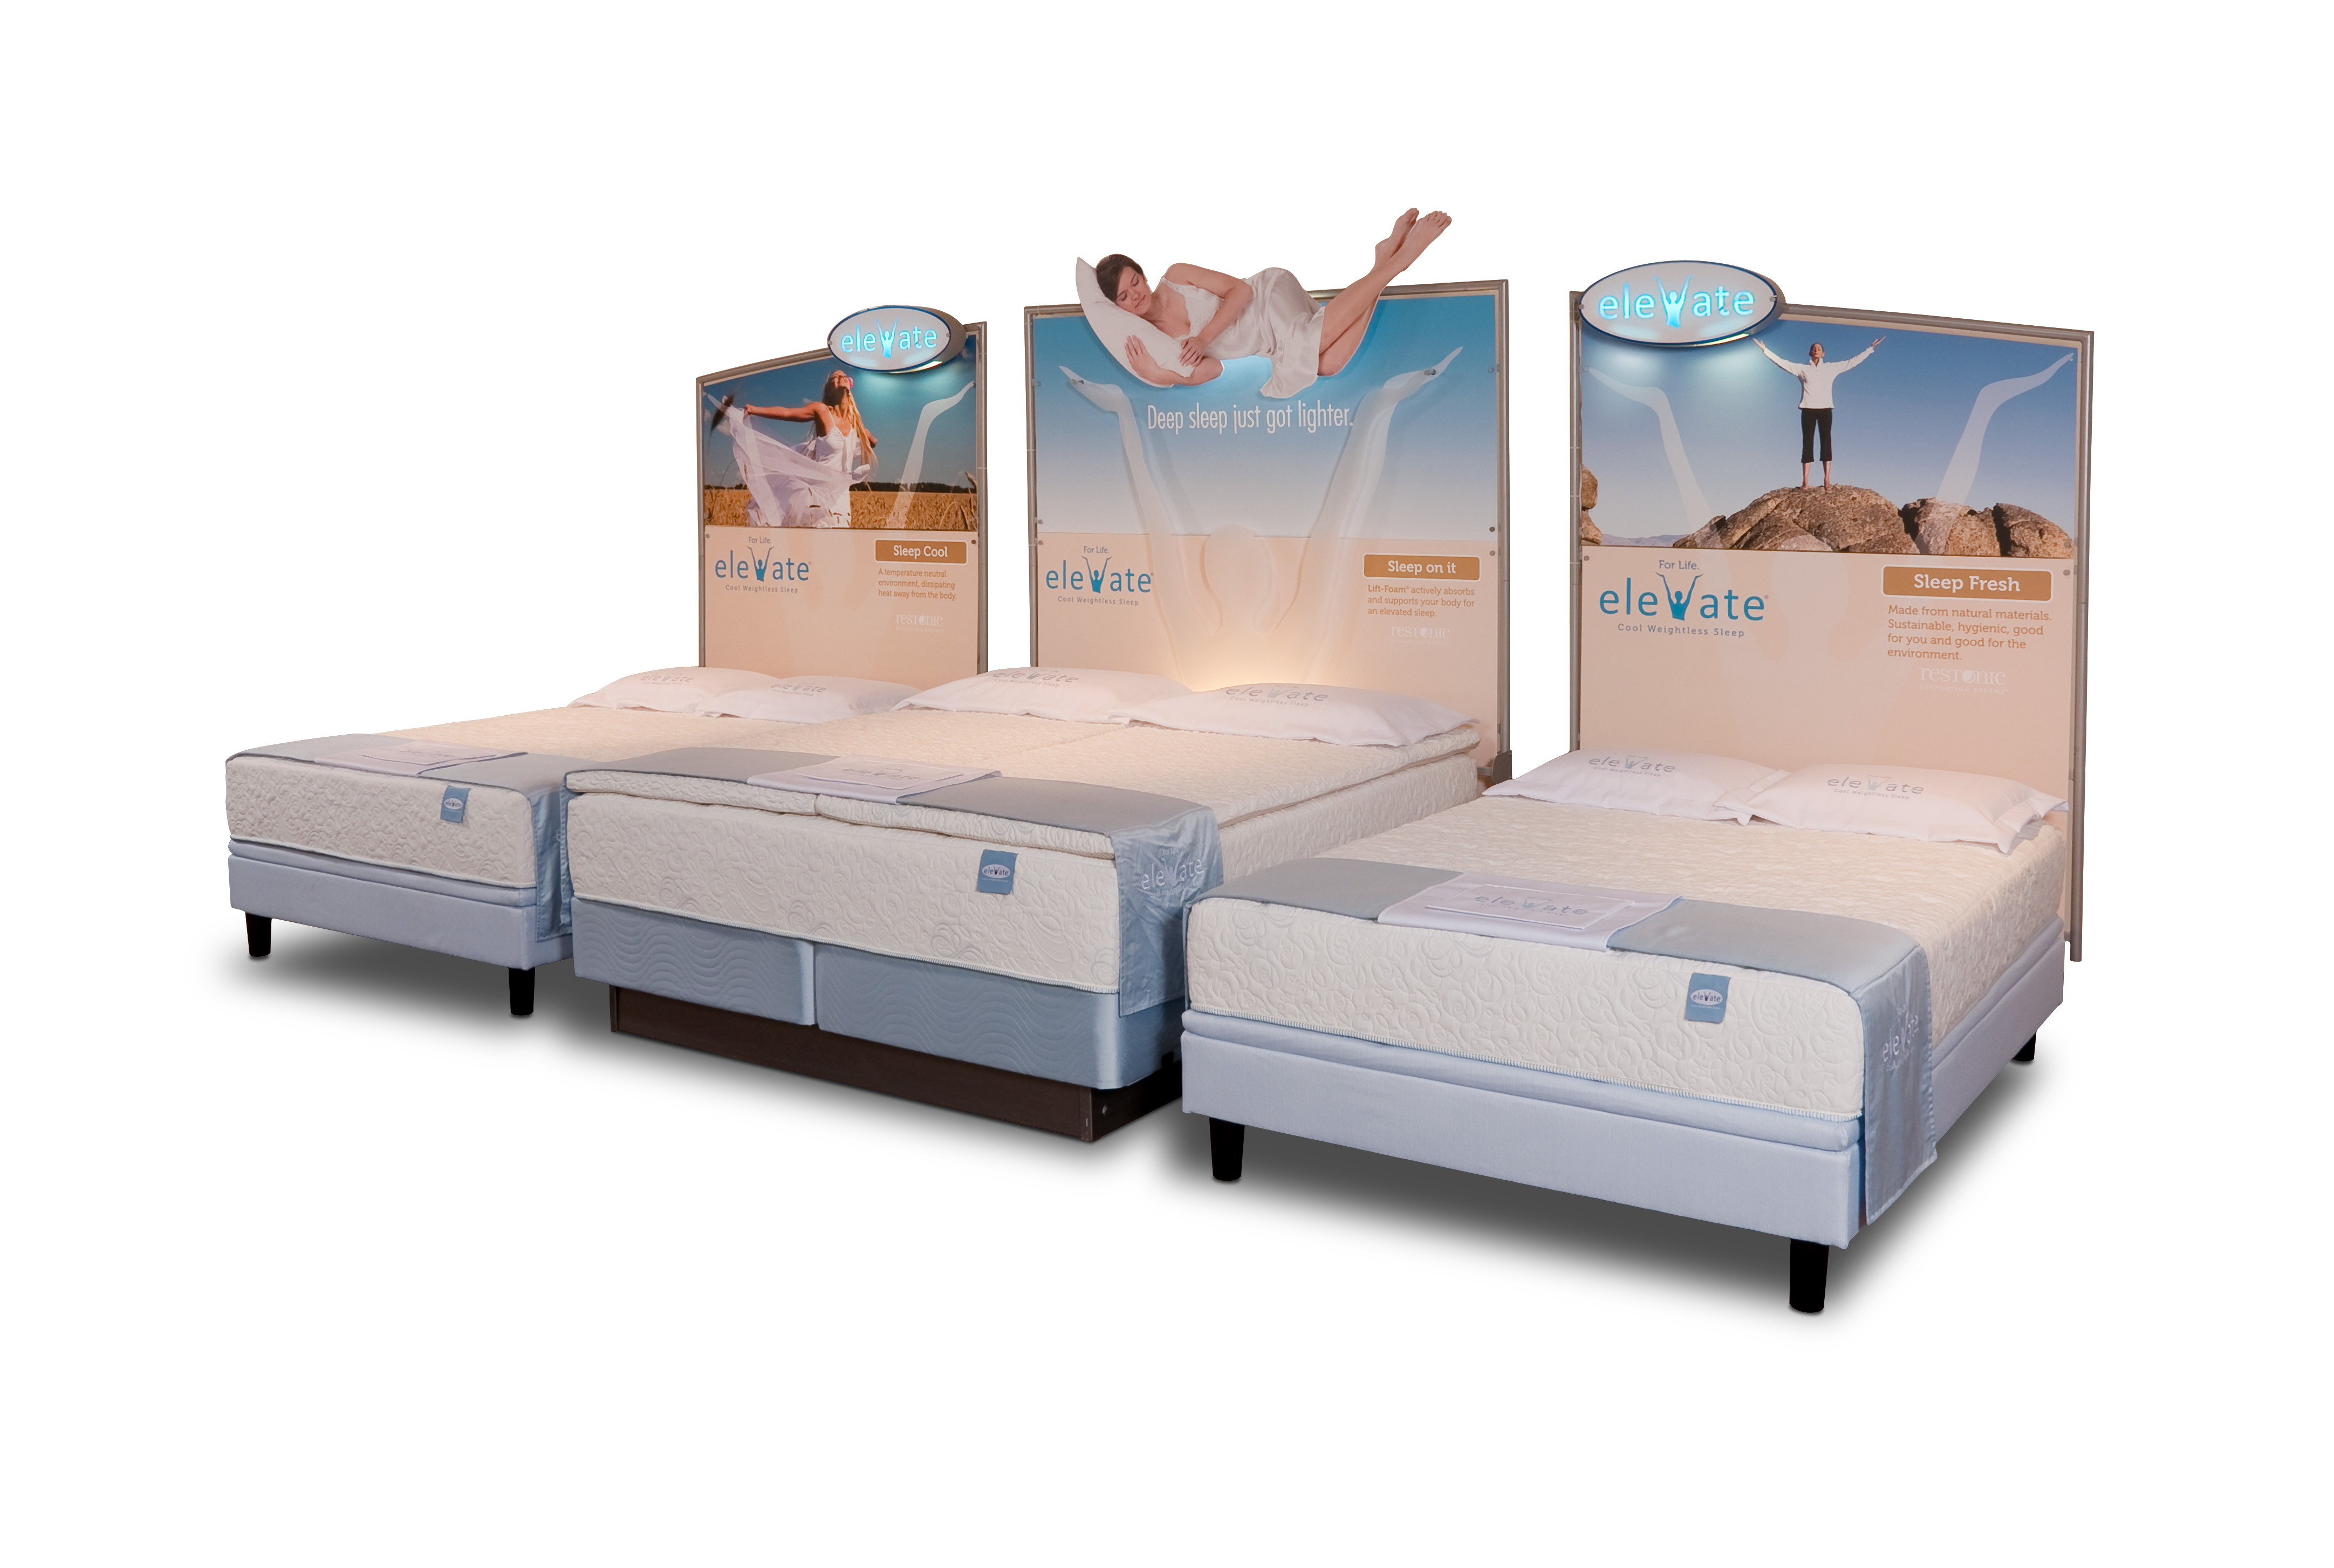 Bath bed business and beyond best bisales 9